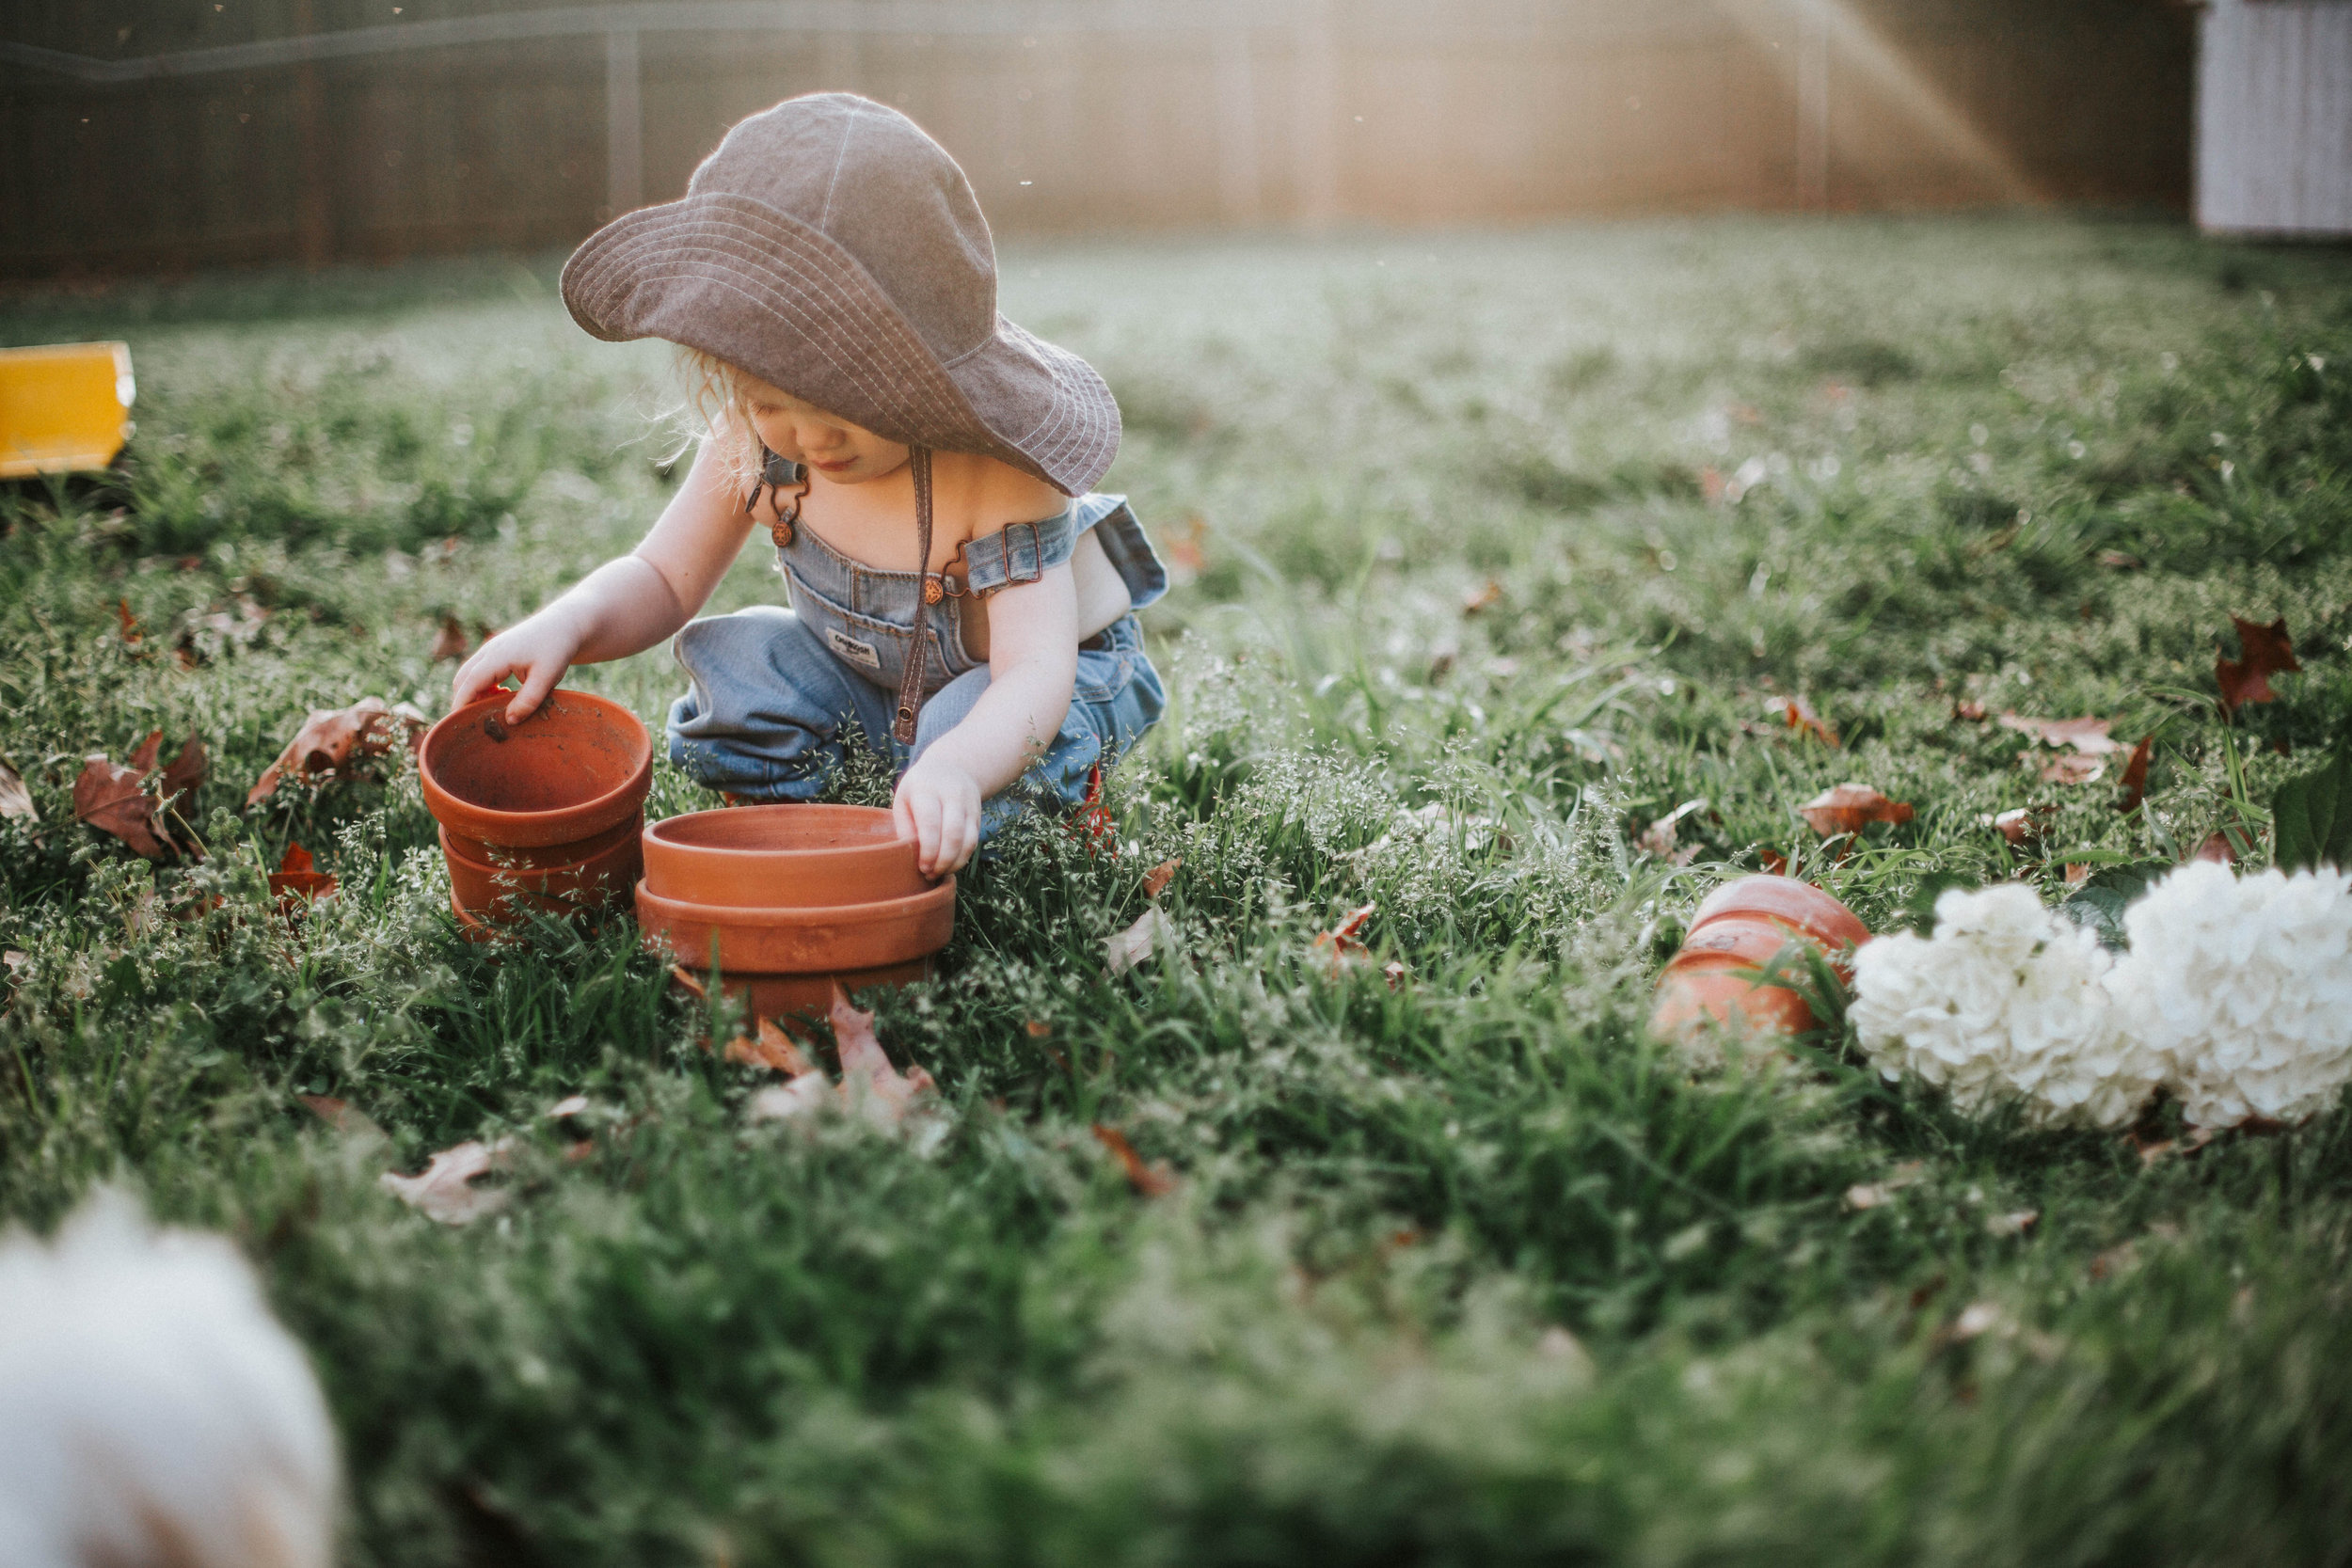 Toddler in garden with wide brim sun hat by Bluecorduroy.com